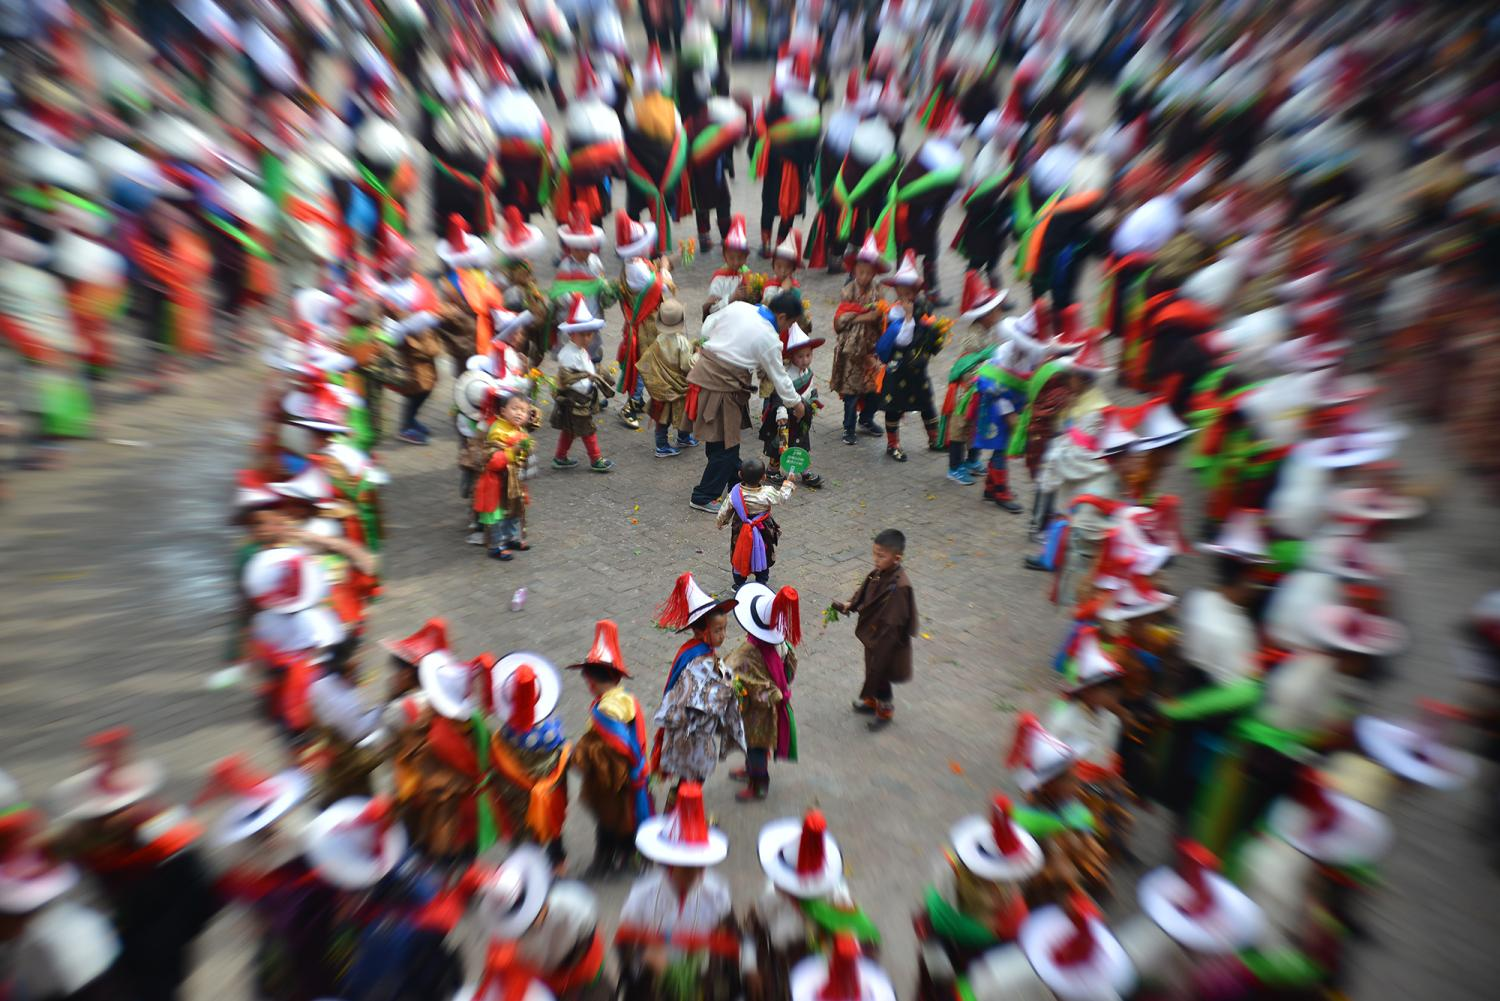 """During the """"Dance"""" or Gar (གར) portion of the festival, men and women wear fine clothes and jewelry and dance together in a swirling pattern. They eventually fill the entire courtyard."""